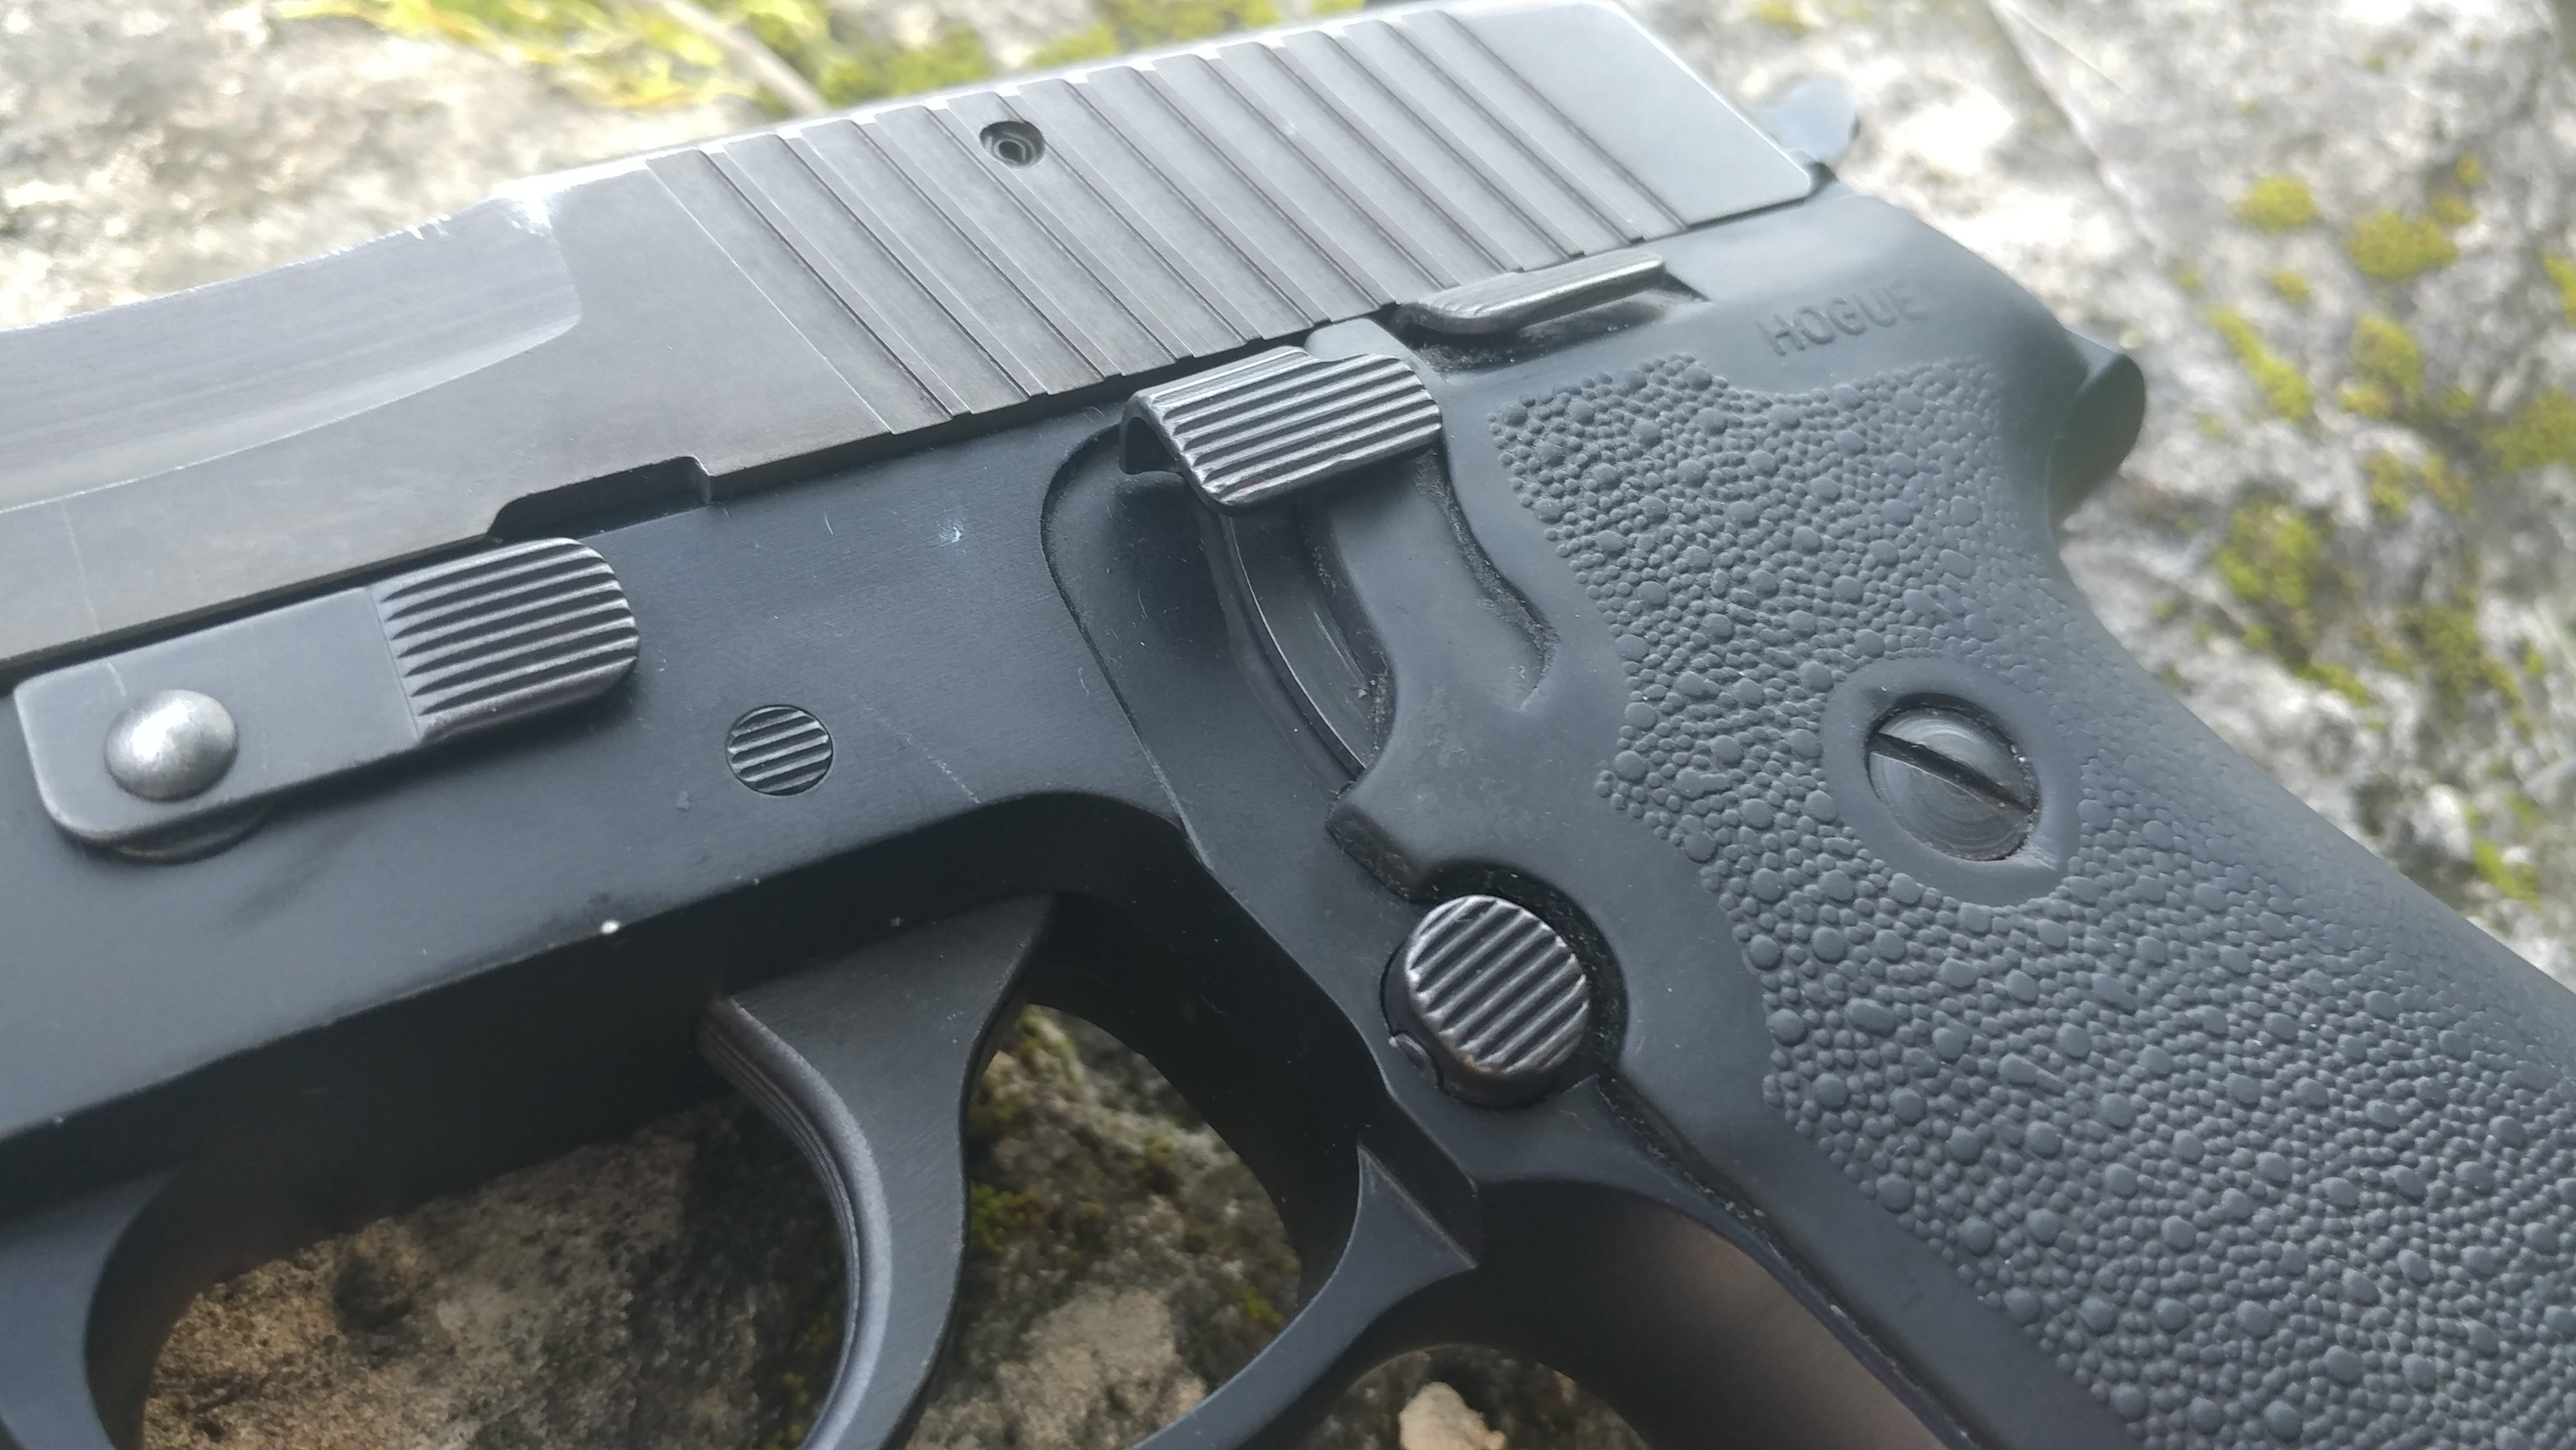 gun review, SIG SAUER, SIG P220, Travis Pike, CrossBreed Holsters, guns, handguns, SIG, P220